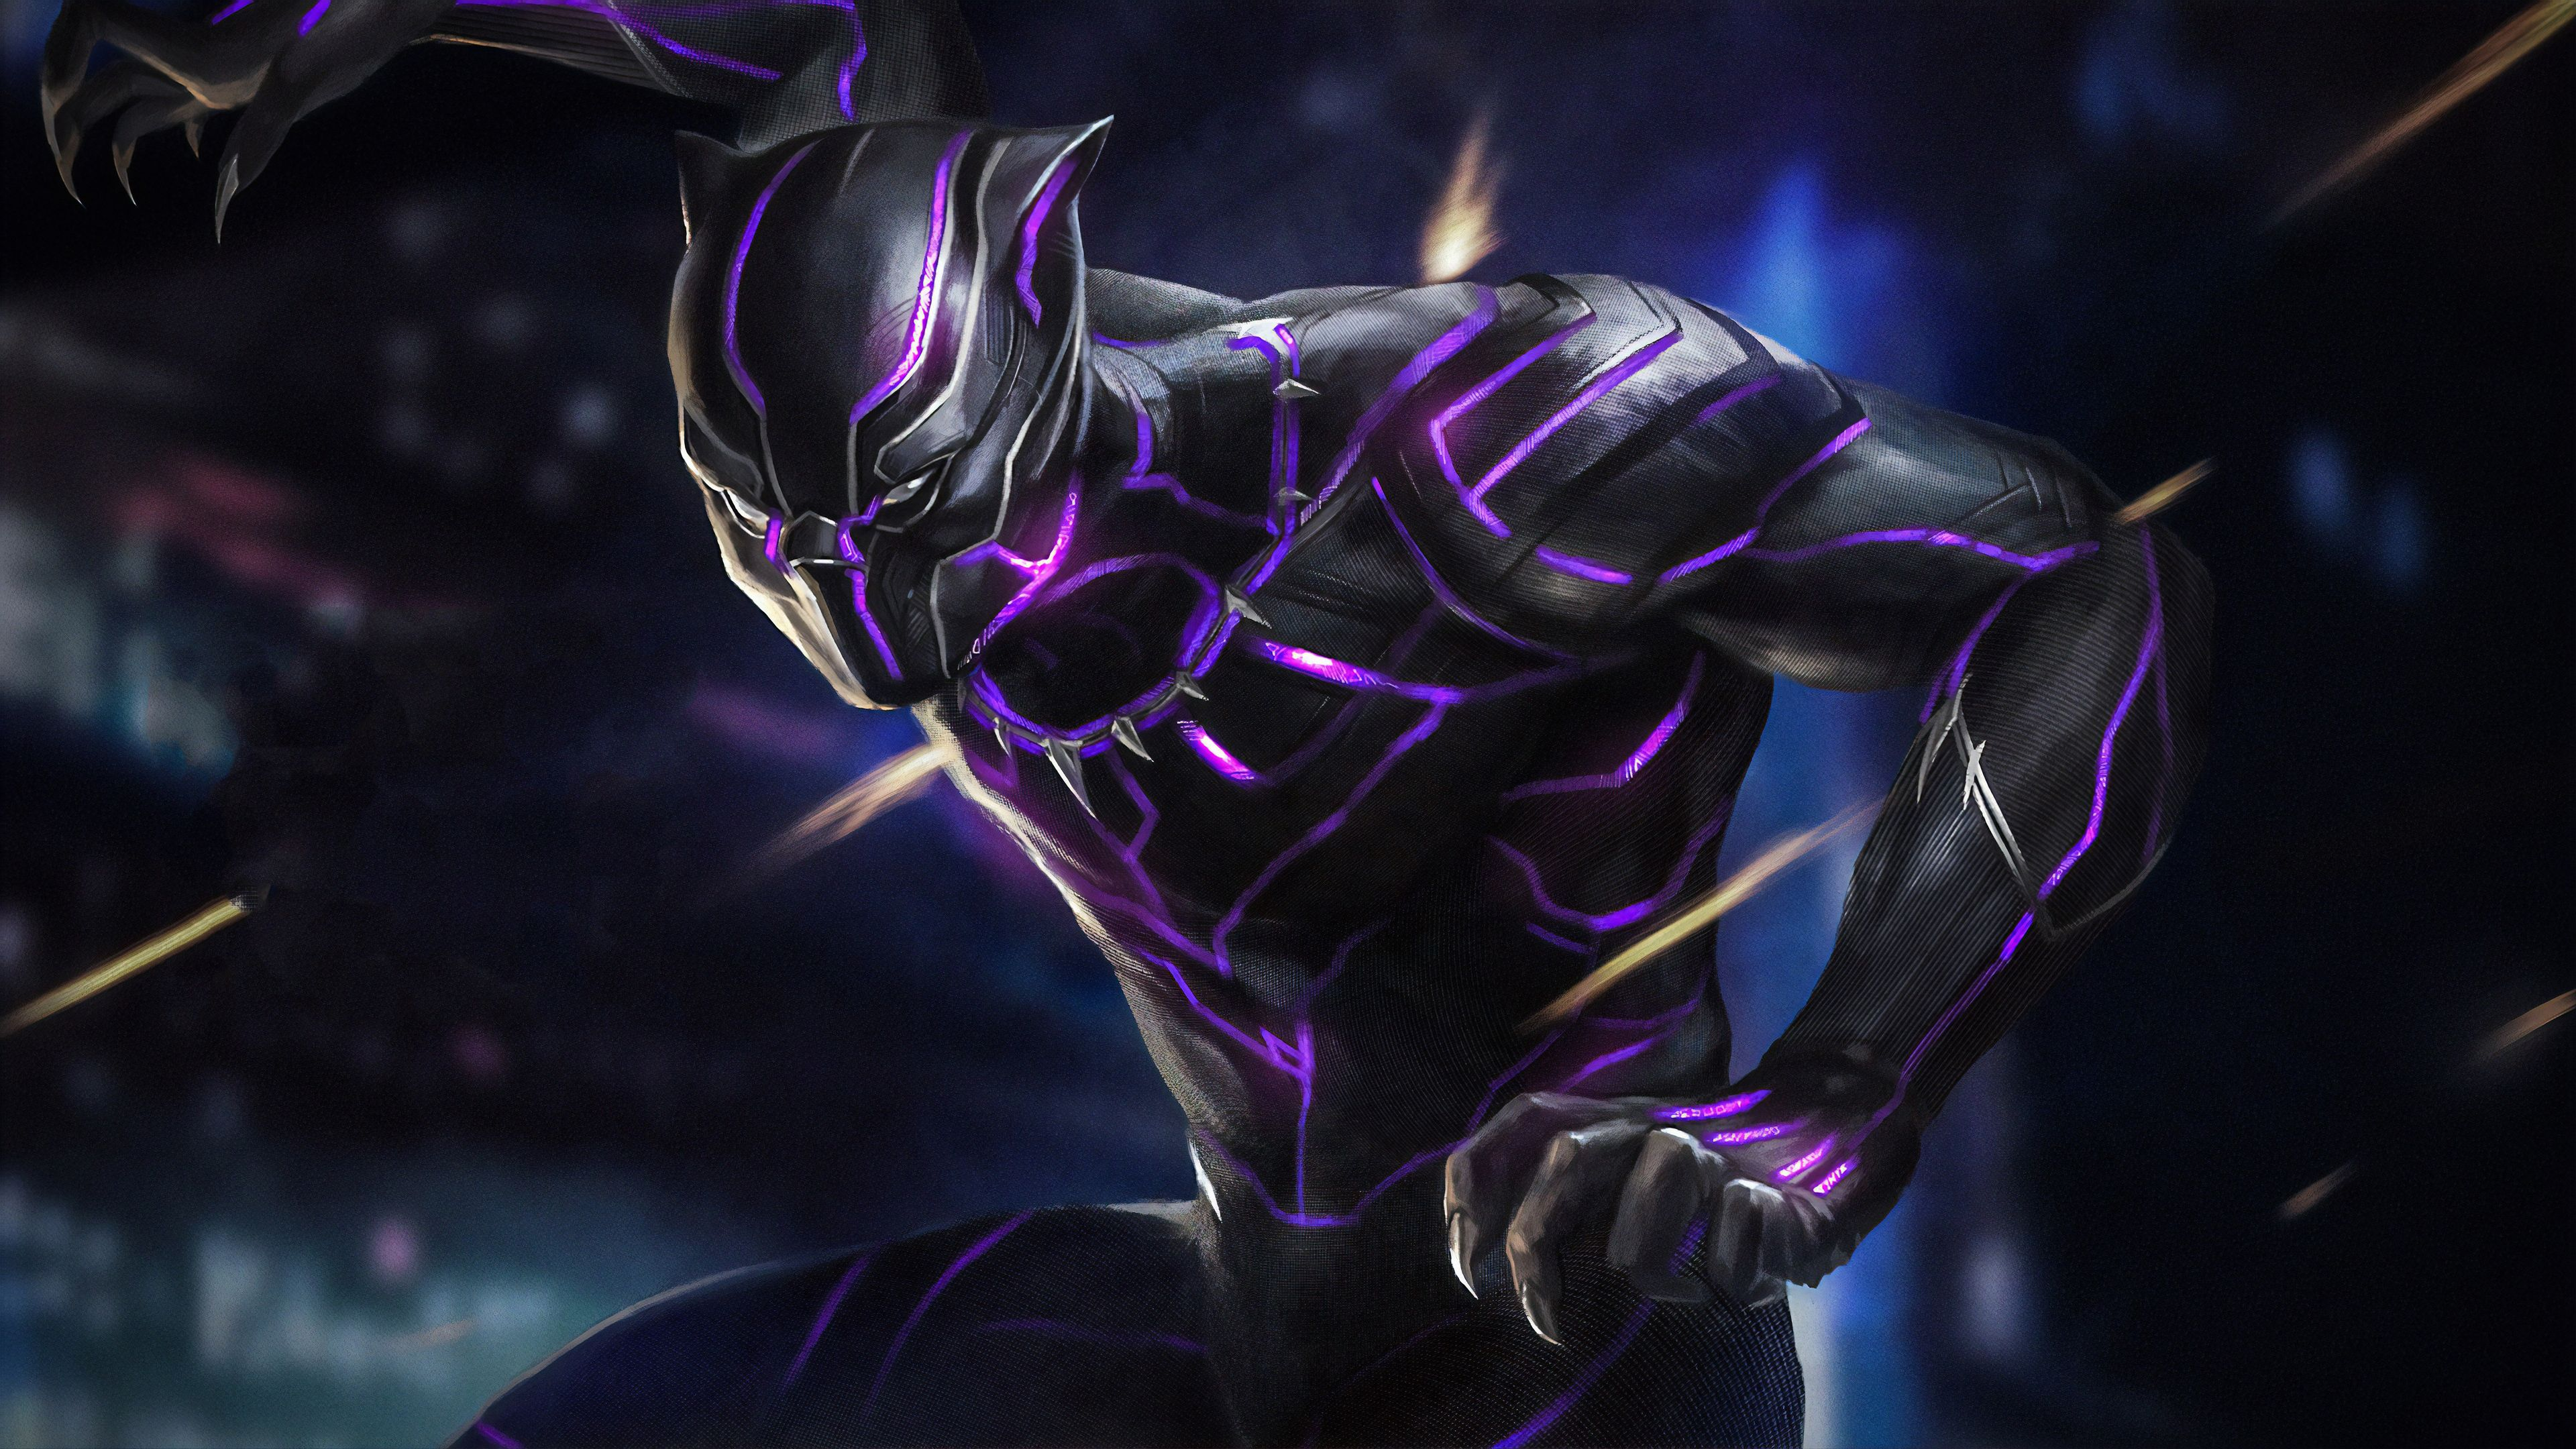 Black Panther New Superheroes Wallpapers Hd Wallpapers Black Panther Wallpapers Artwork Wallpapers Artstat In 2020 Black Panther Hd Wallpaper Black Panther Panther